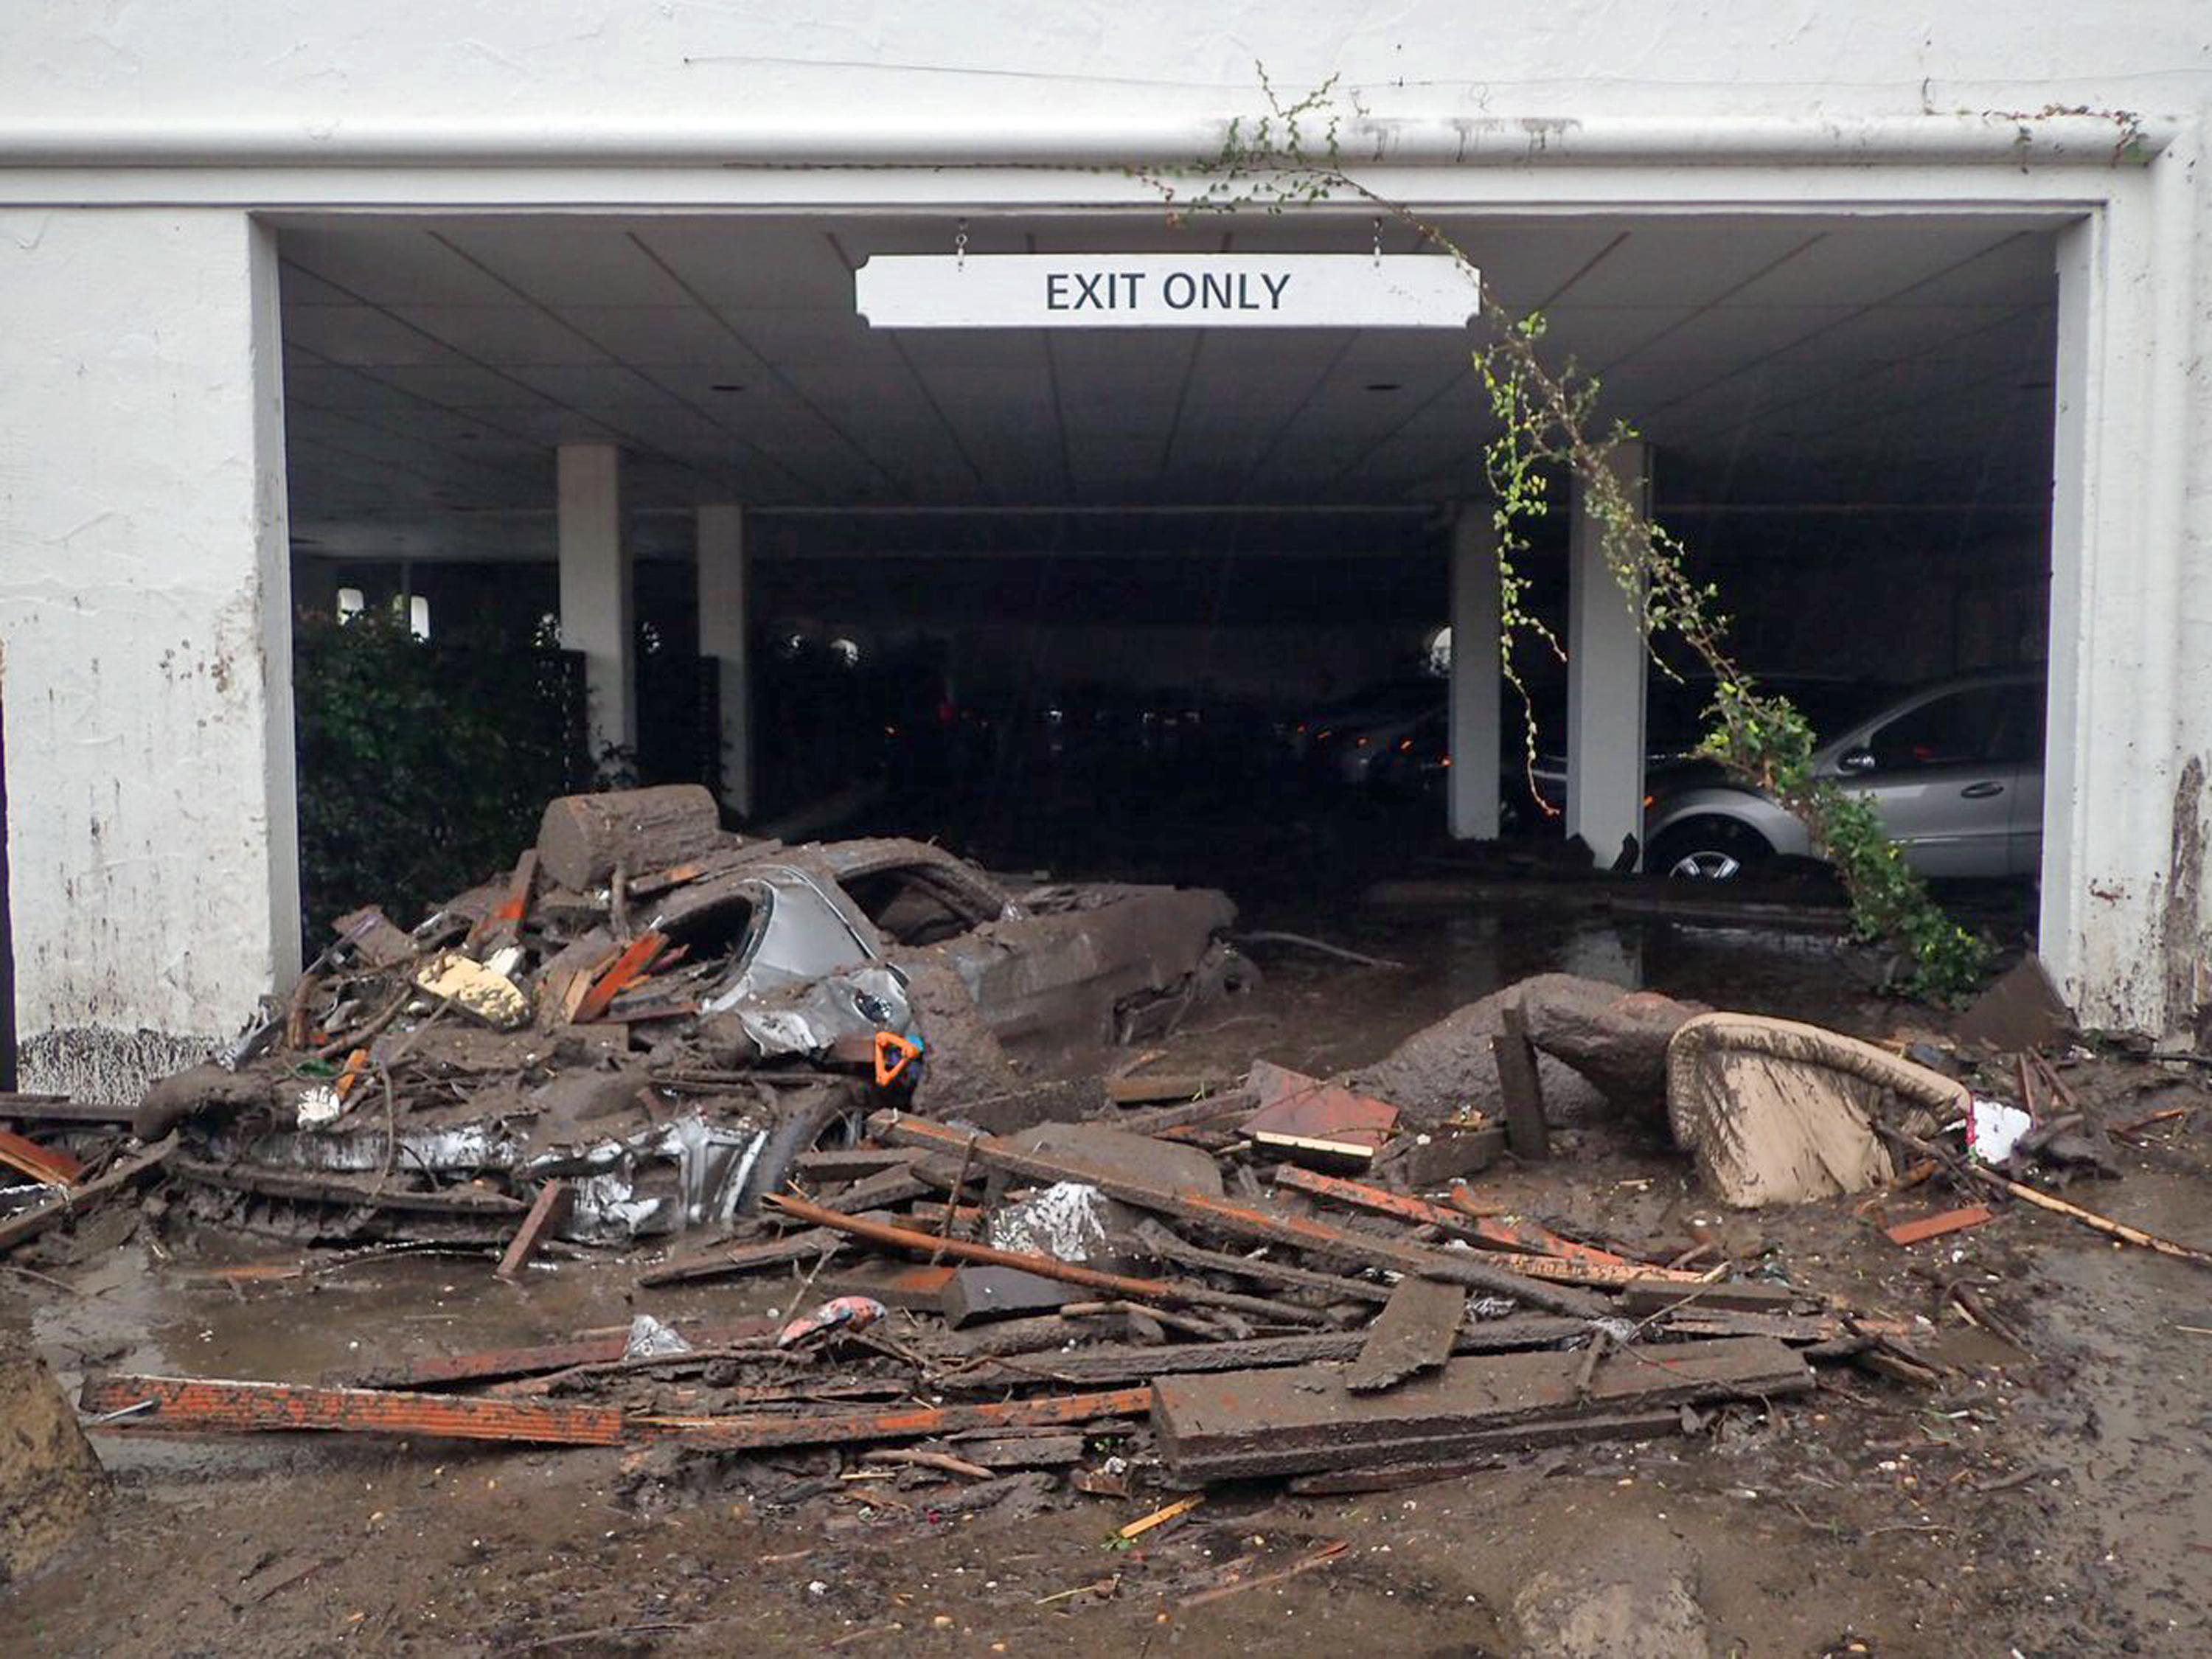 This photo provided by the Santa Barbara County Fire Department shows damaged vehicles carried by mud flow and debris at the parking garage of The Montecito Inn in Montecito, Calif., Tuesday, Jan. 9, 2018. Several homes were swept away before dawn Tuesday when mud and debris roared into neighborhoods in Montecito from hillsides stripped of vegetation during the Thomas wildfire. (Mike Eliason/Santa Barbara County Fire Department via AP)